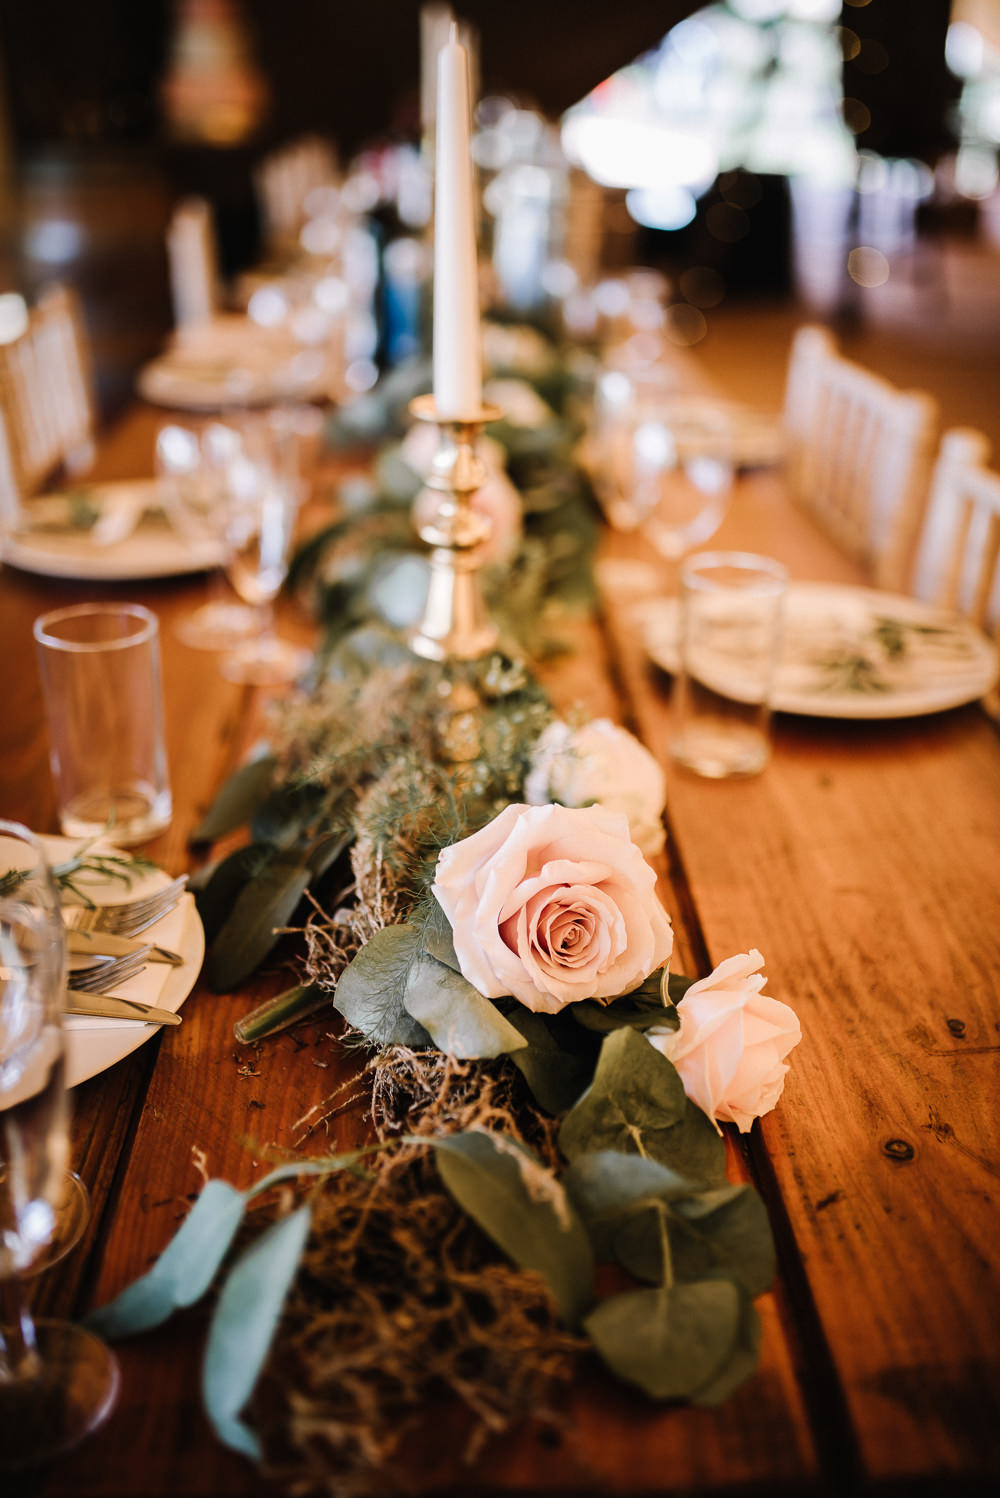 Table Decor Long Garland Swag Greenery Runner Foliage Alcott Weddings Oobaloos Photography